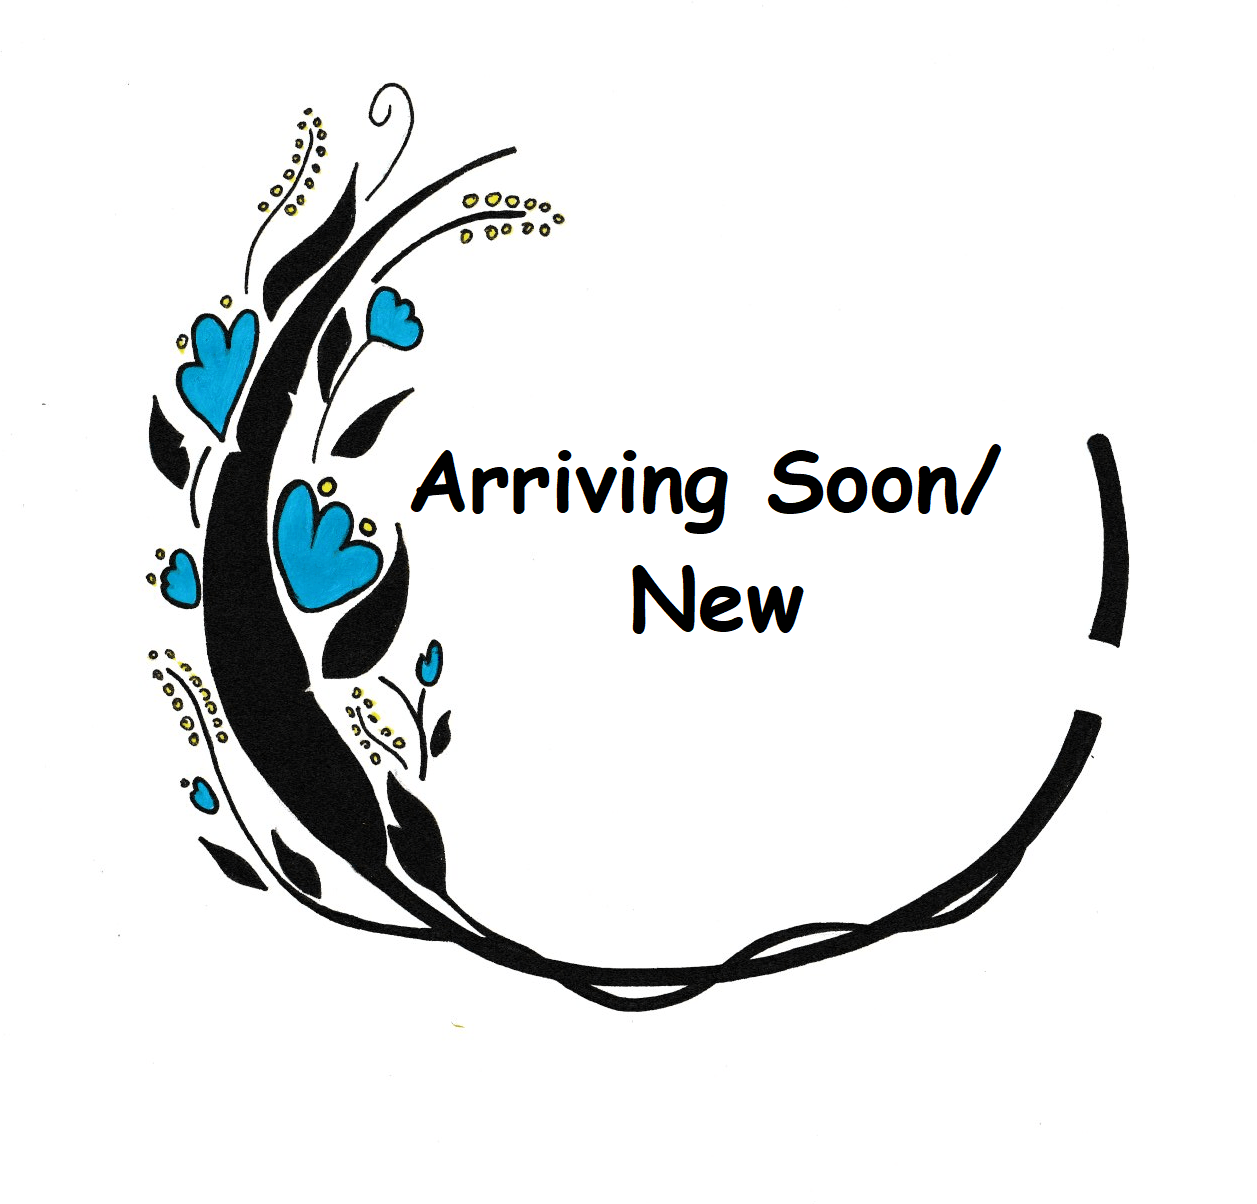 Arriving Soon/New